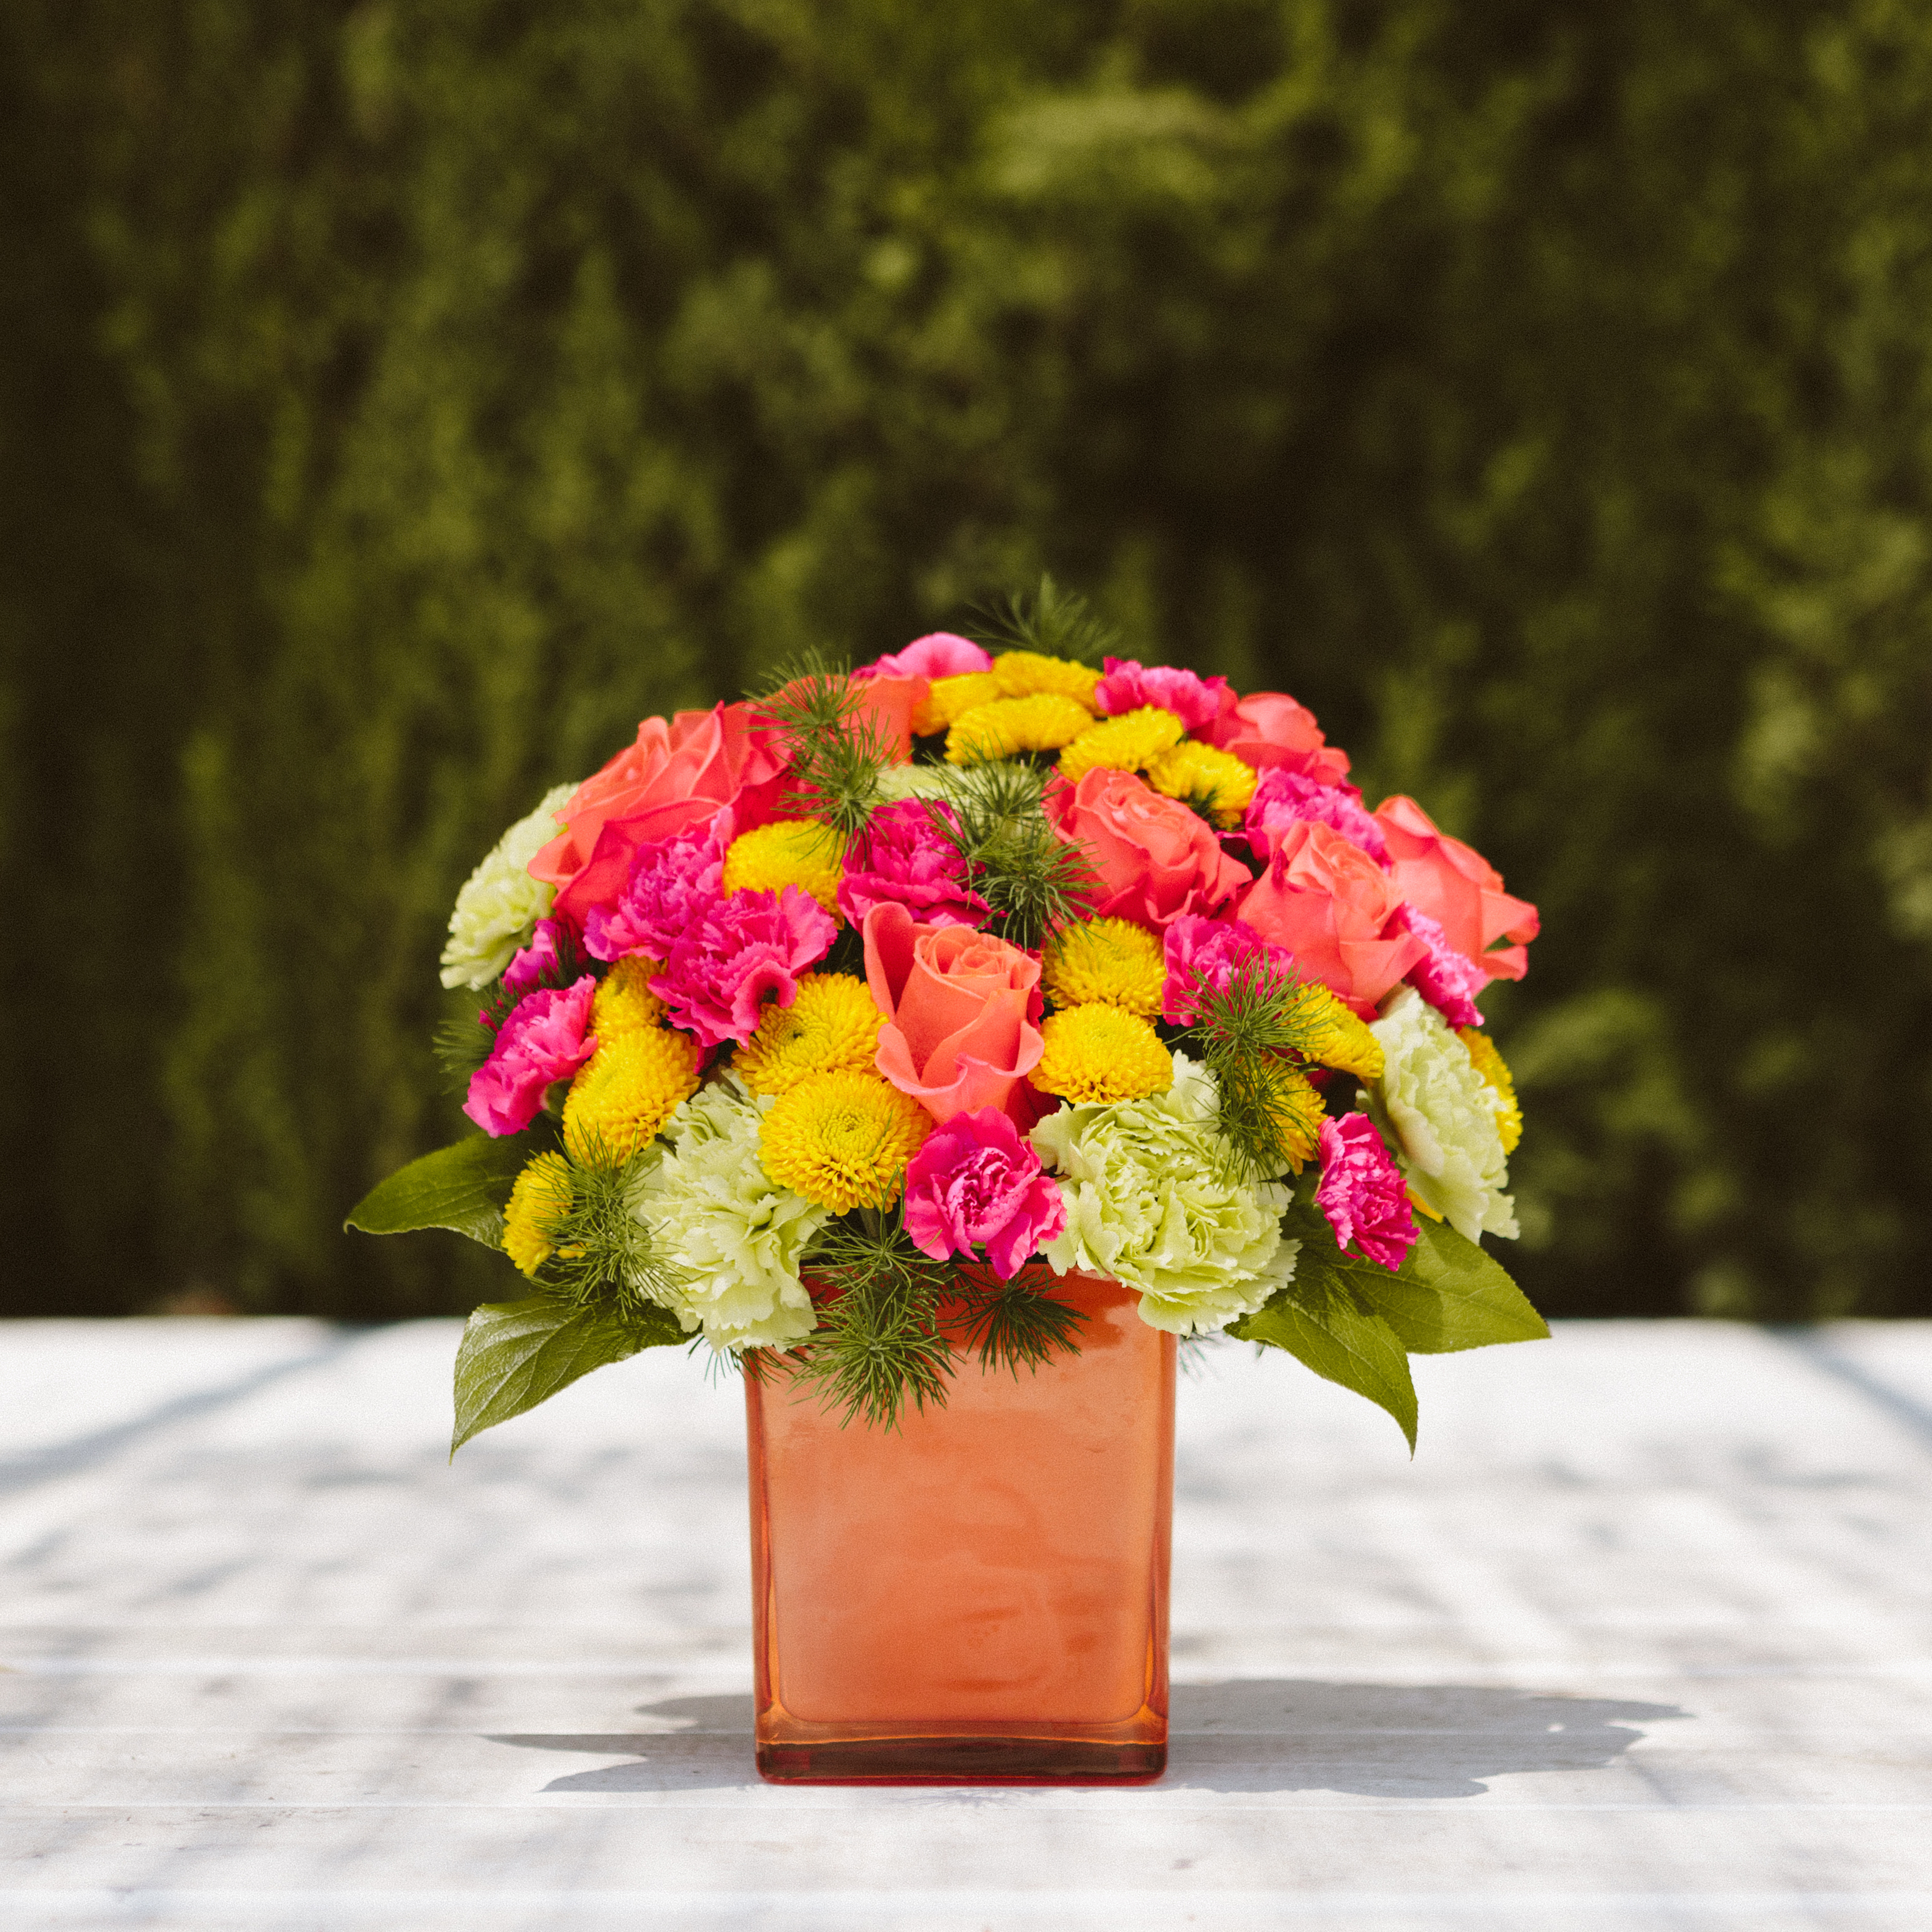 Orange cube vase filled with orange roses, yellow mums, green carnations and more on outdoor table